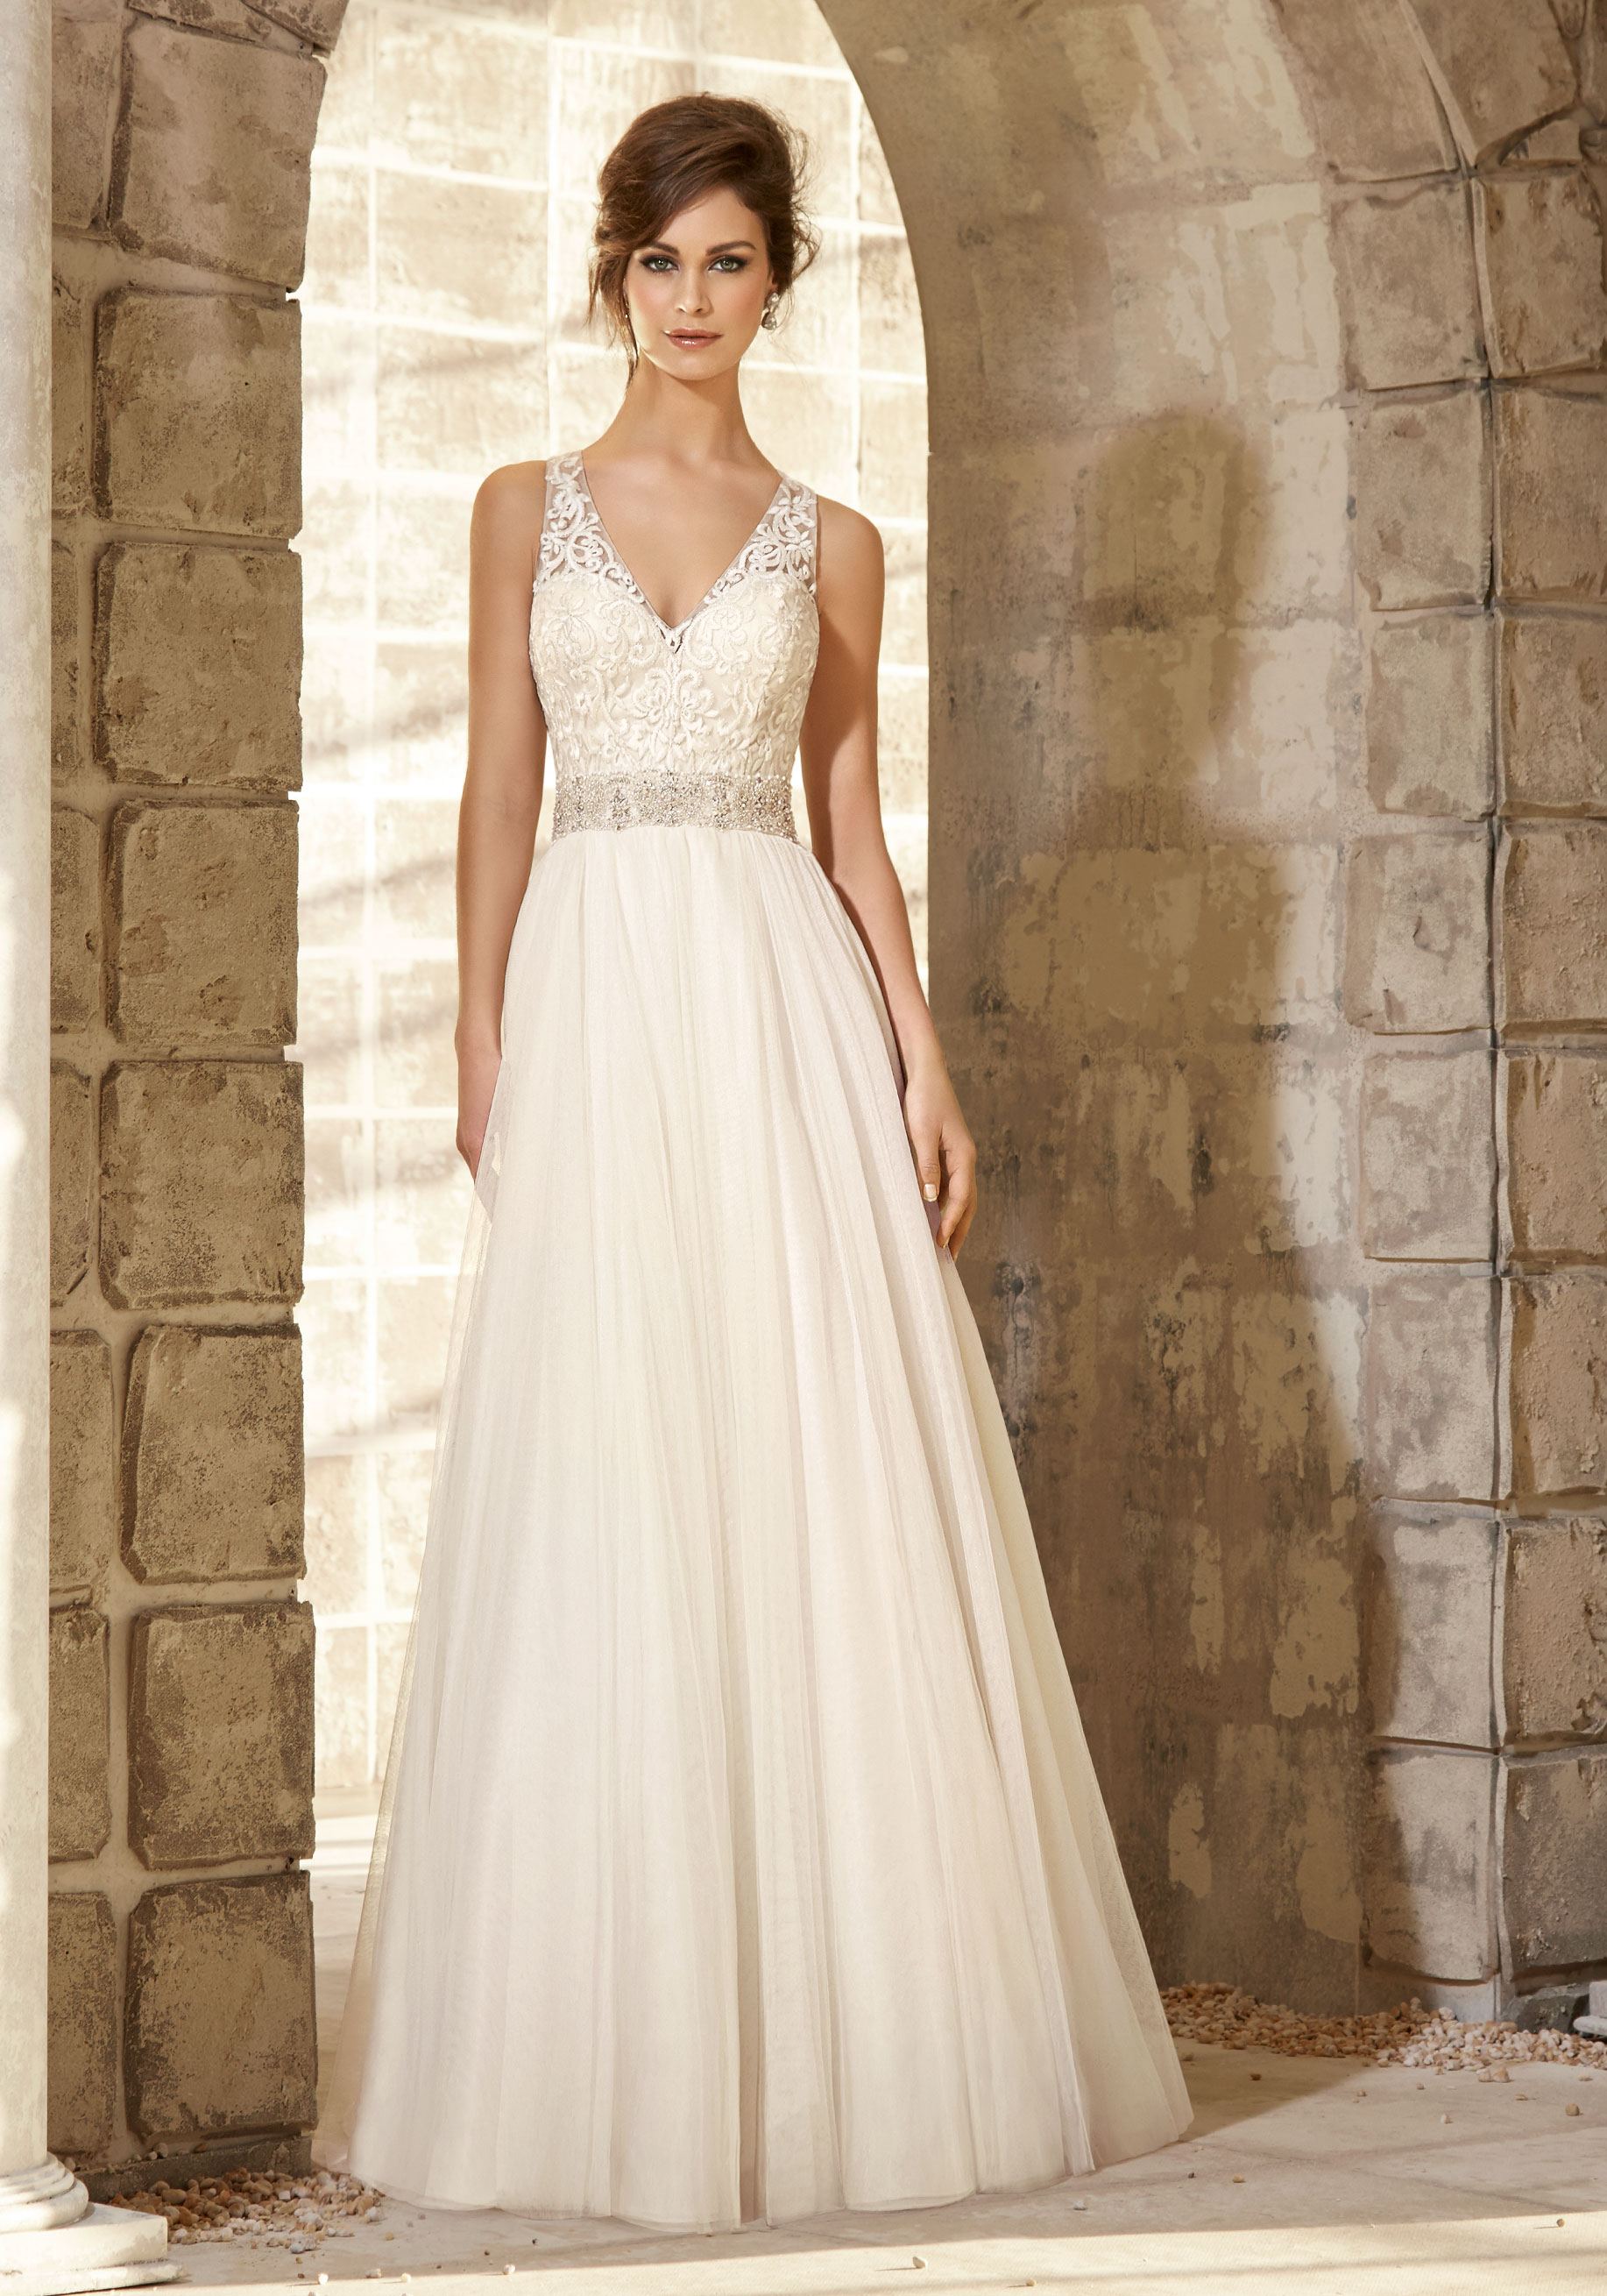 Mori Lee 5371 Ivory/Silver // Retail Price $865 | Our Price $605